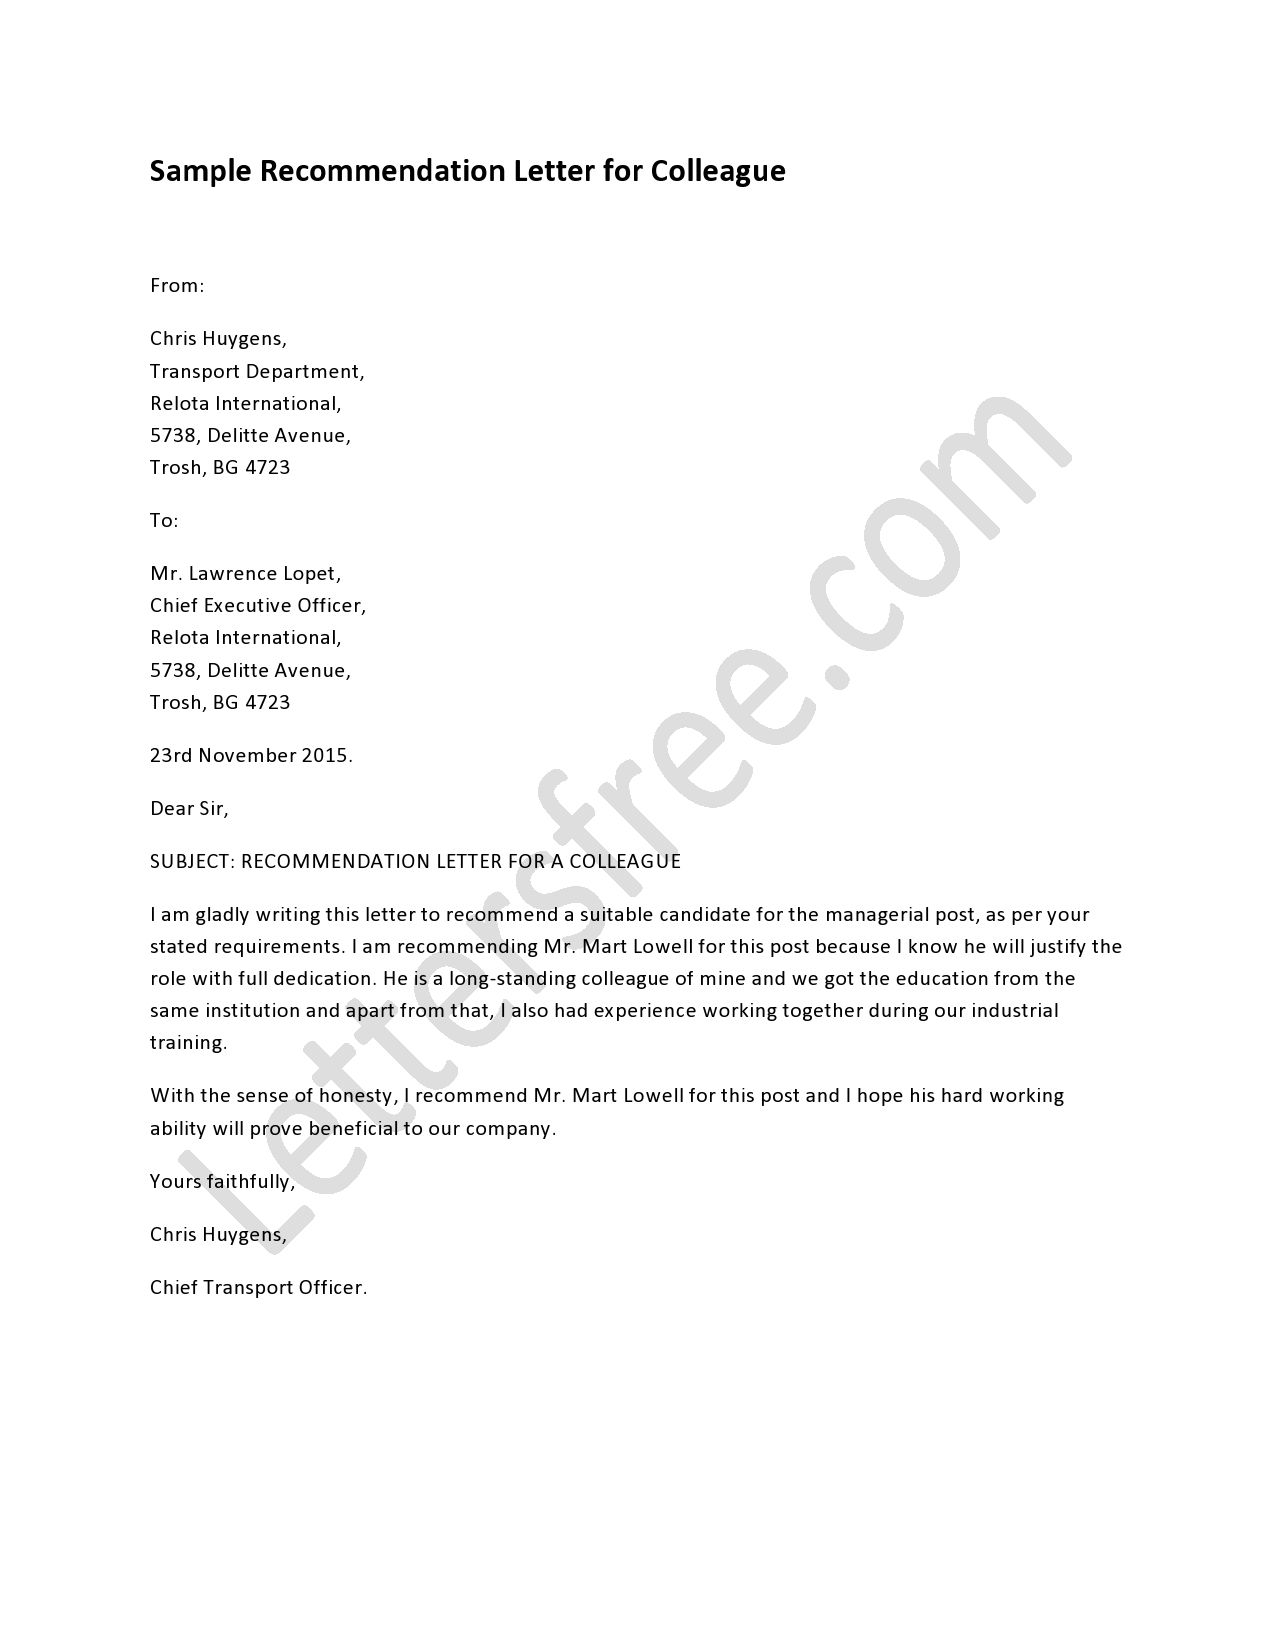 Letter for Colleague Lettering, Writing a